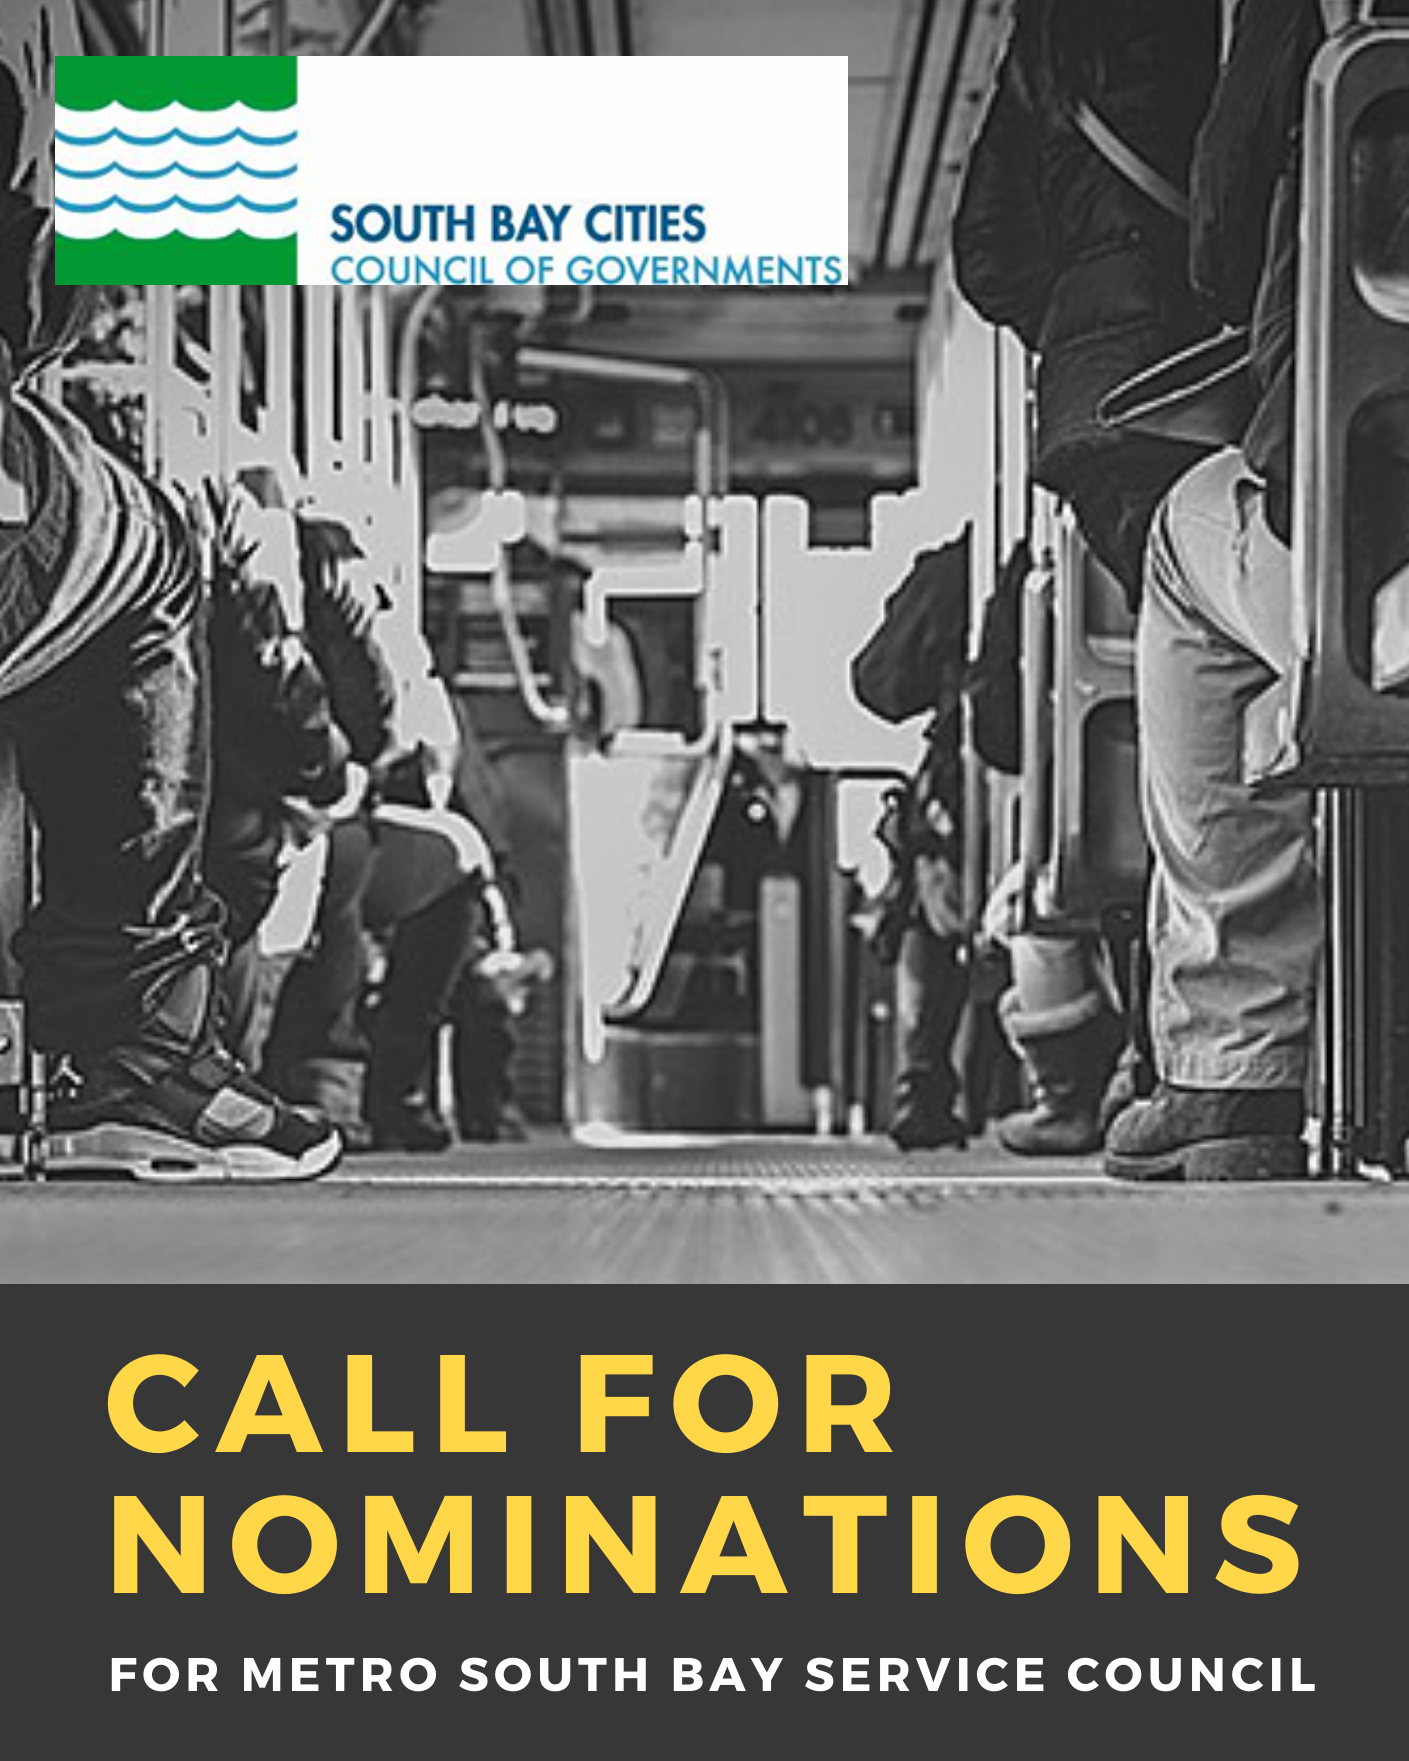 SBCCOG - Call for Nominations (METRO South Bay Services Council)